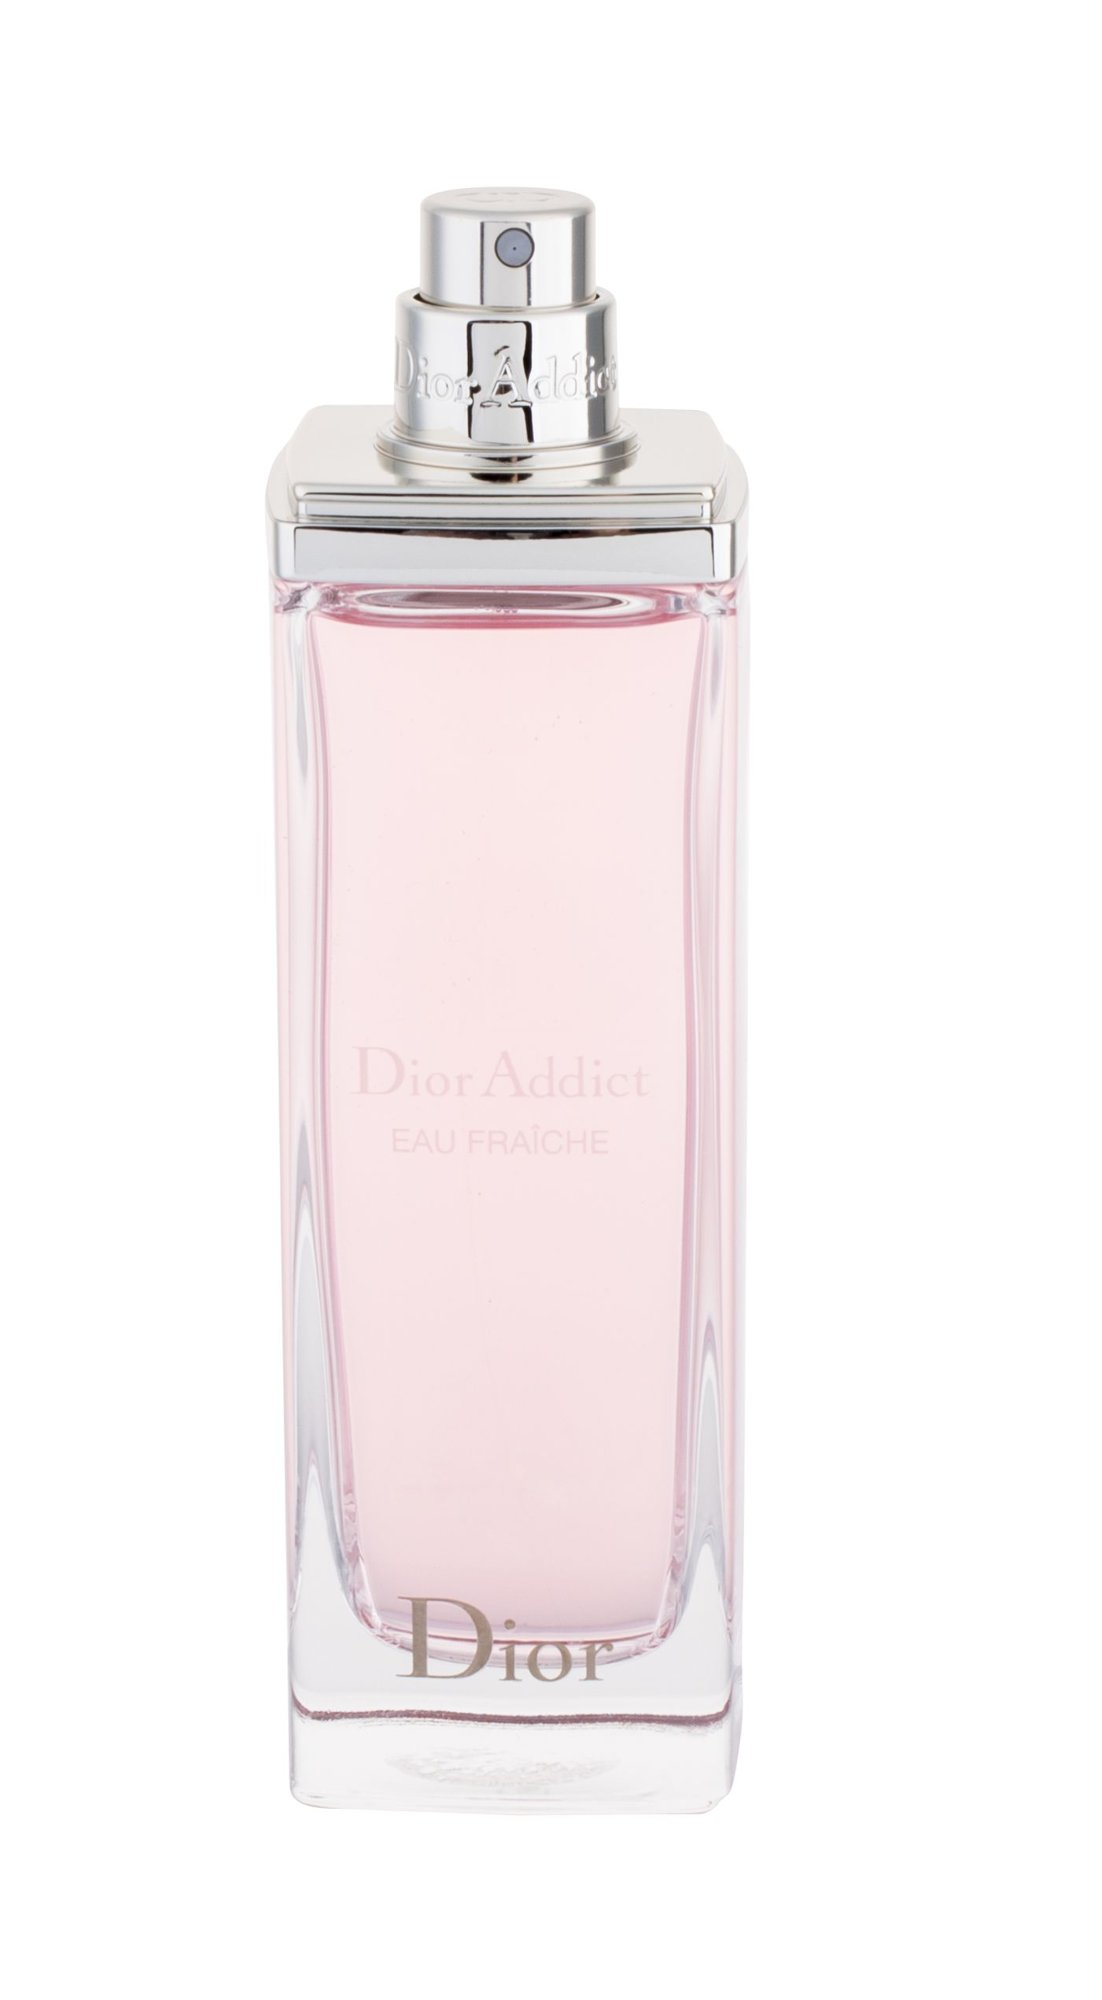 Christian Dior Addict Eau Fraiche EDT 100ml